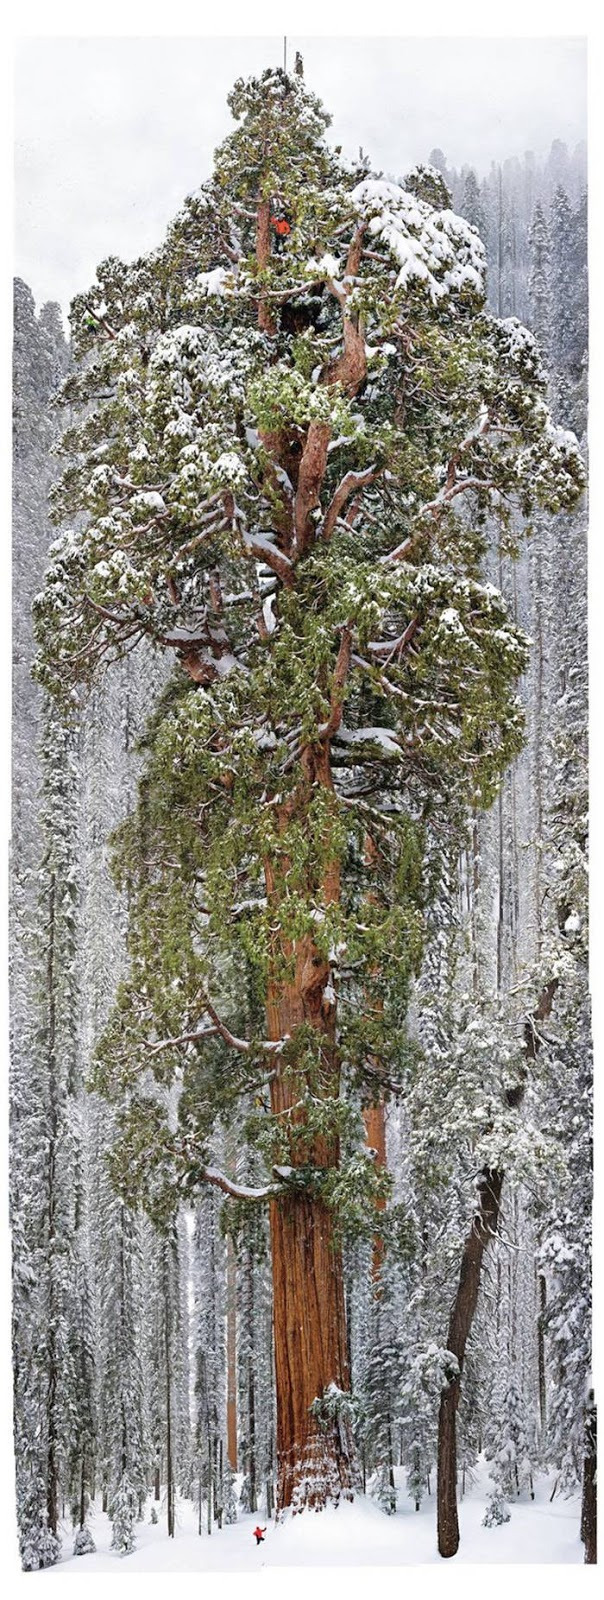 You have to scroll for a long time to see the person at the foot of the sequoia